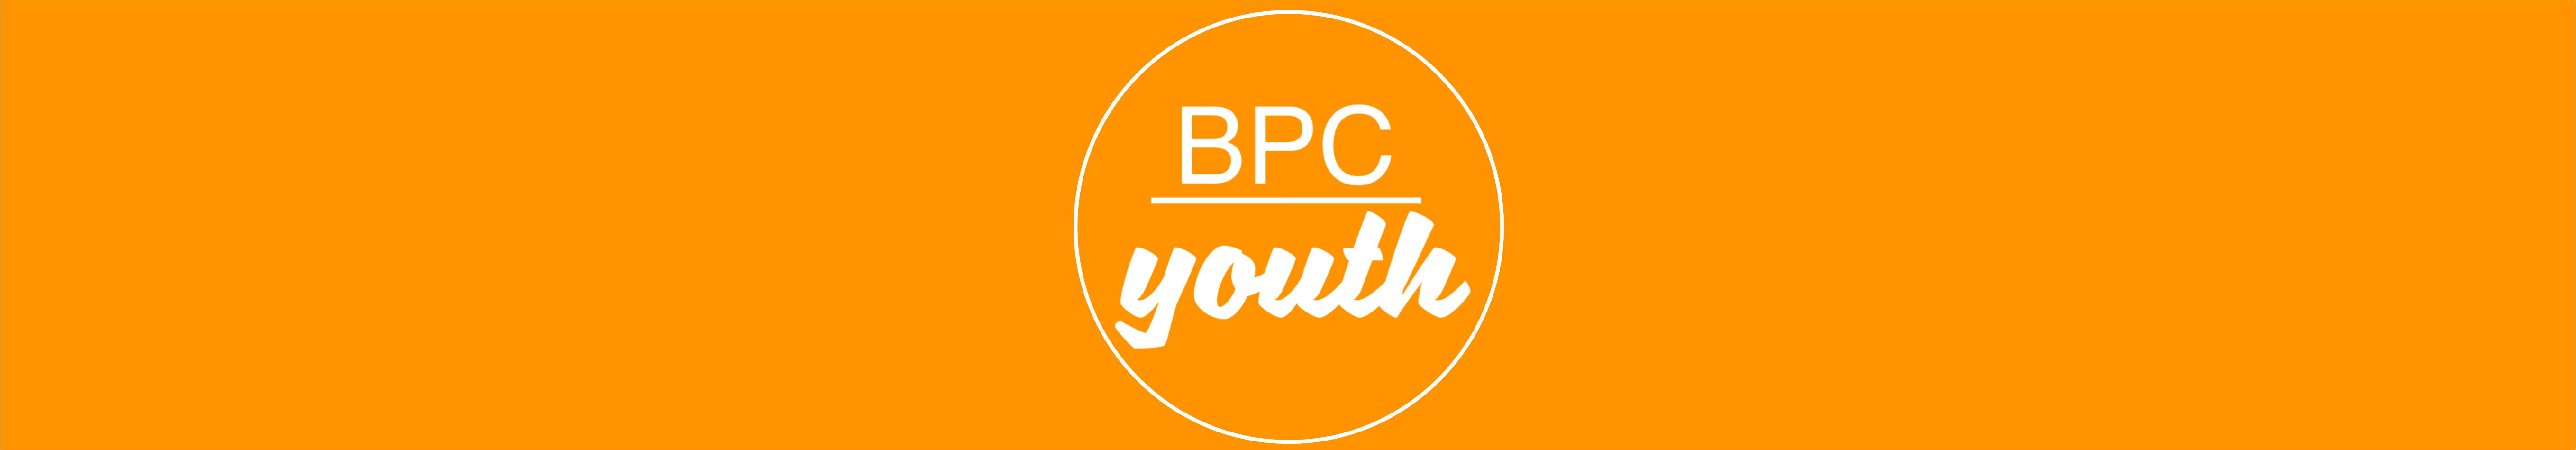 bpc youth website banner